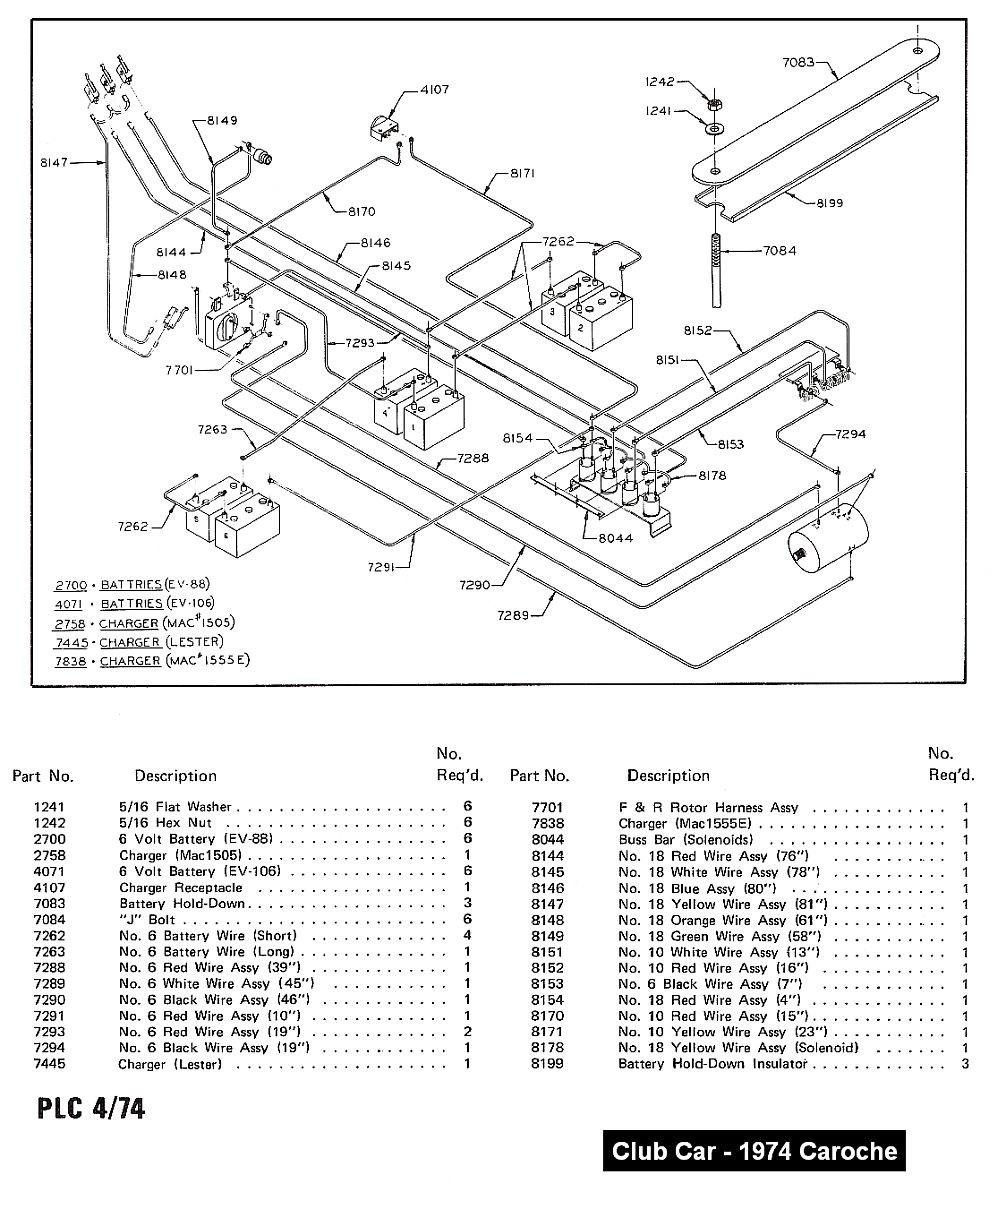 Ingersoll Rand Sd 70 Wiring Diagram Trusted 2000 Carry All 2 Headlights Club Car Carryall